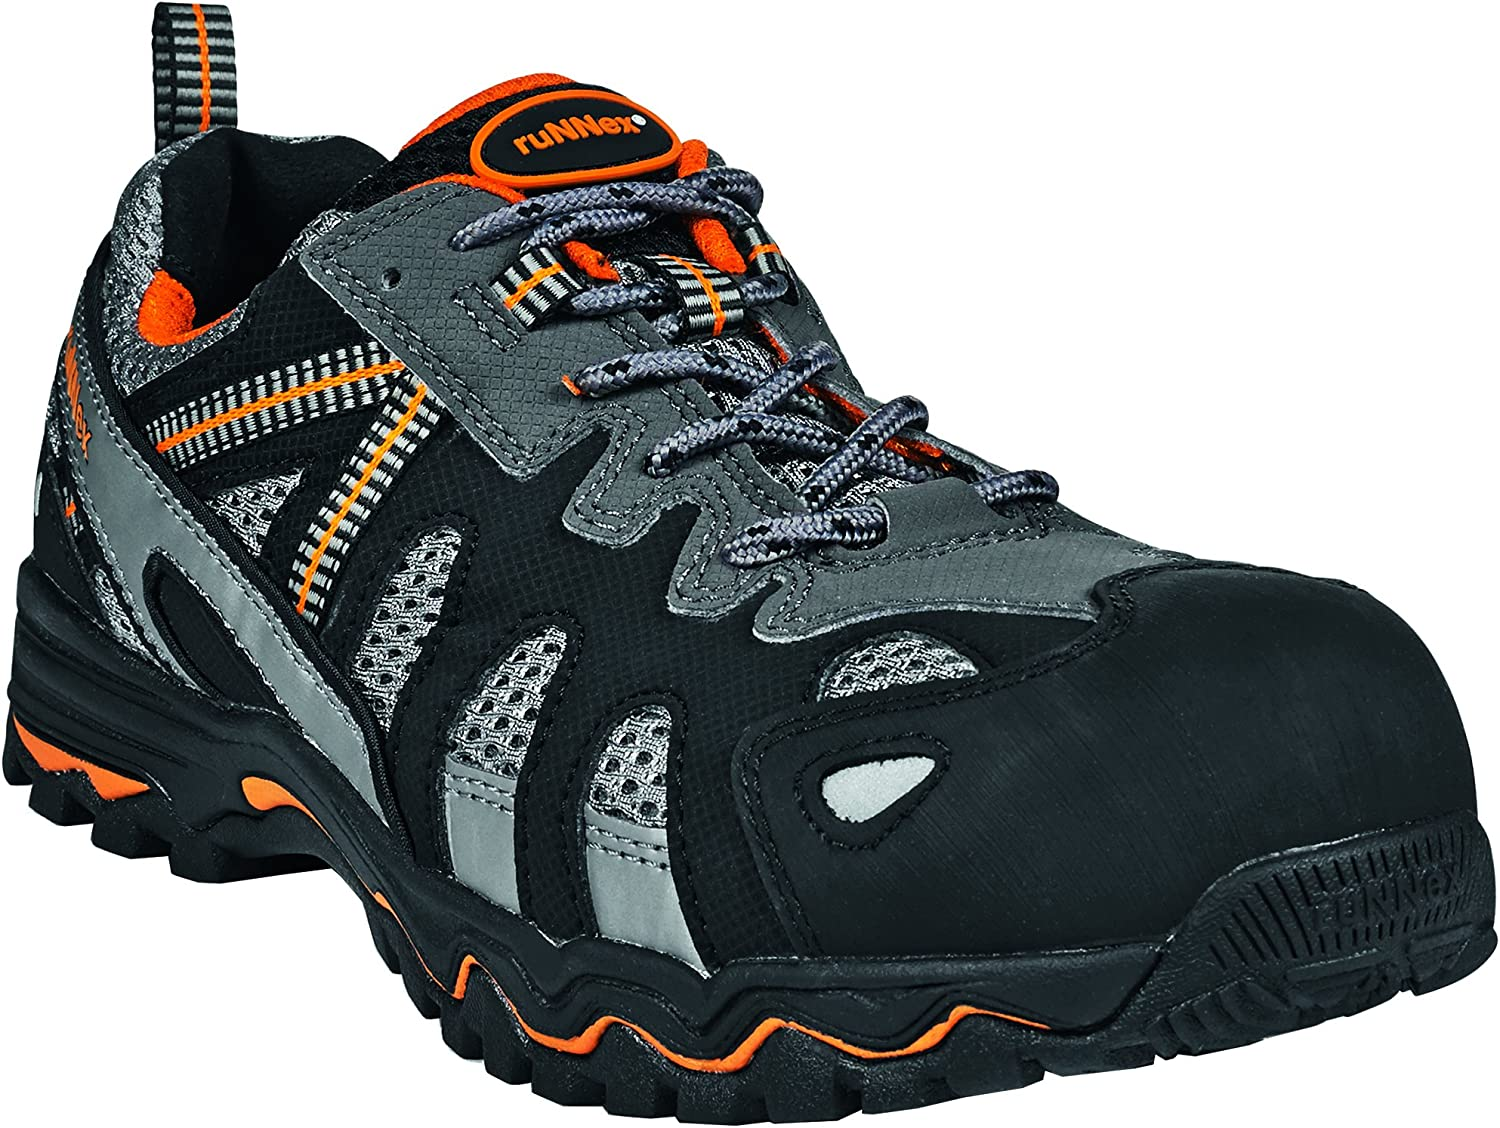 RuNNex Safety Sandals 5120 Safety shoes Norm S1